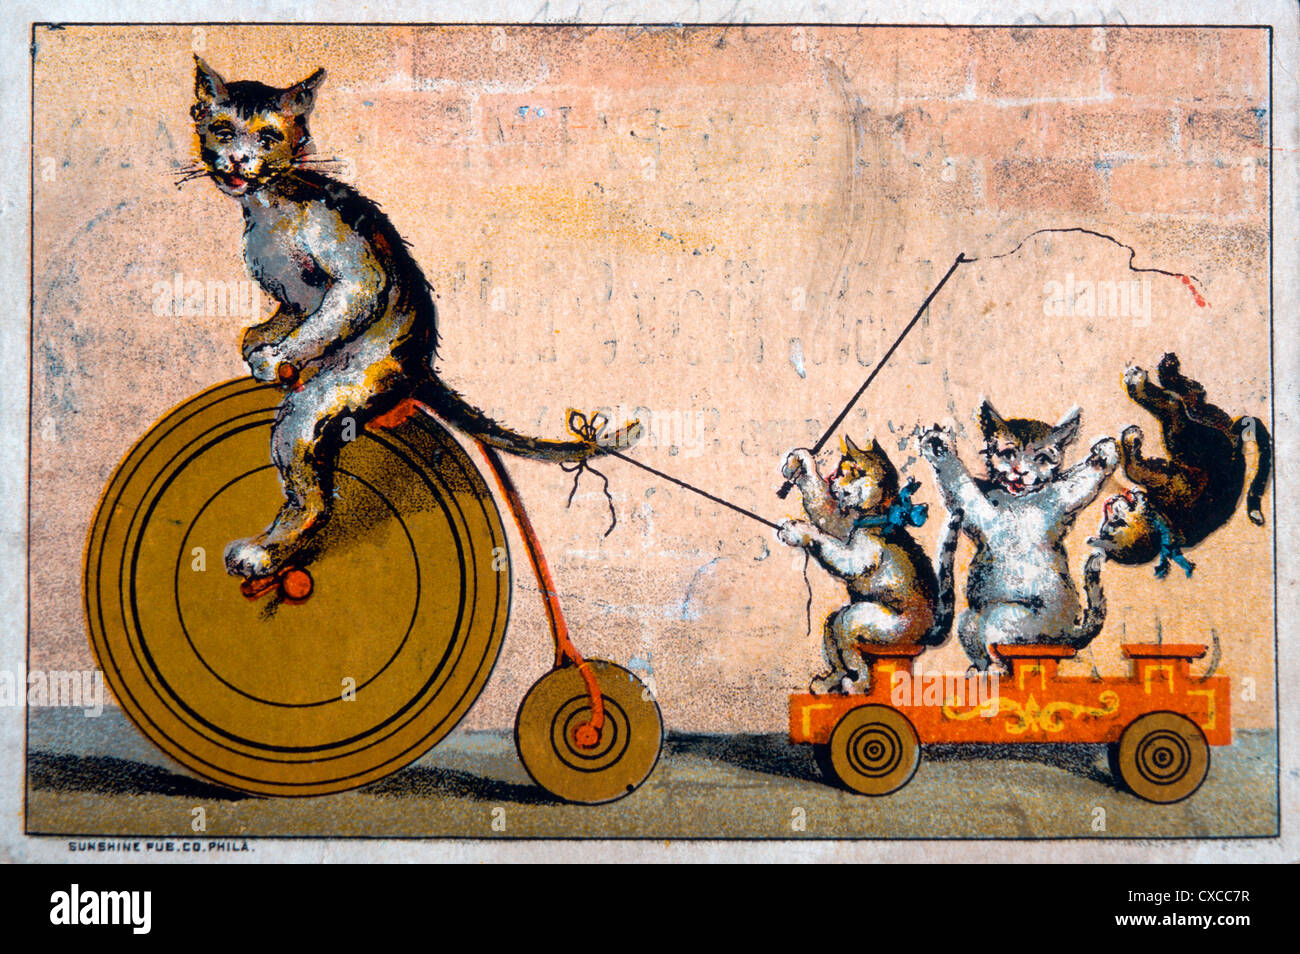 Cat Riding Bicycle Towing Wagon With Kittens Phelps Dodge And